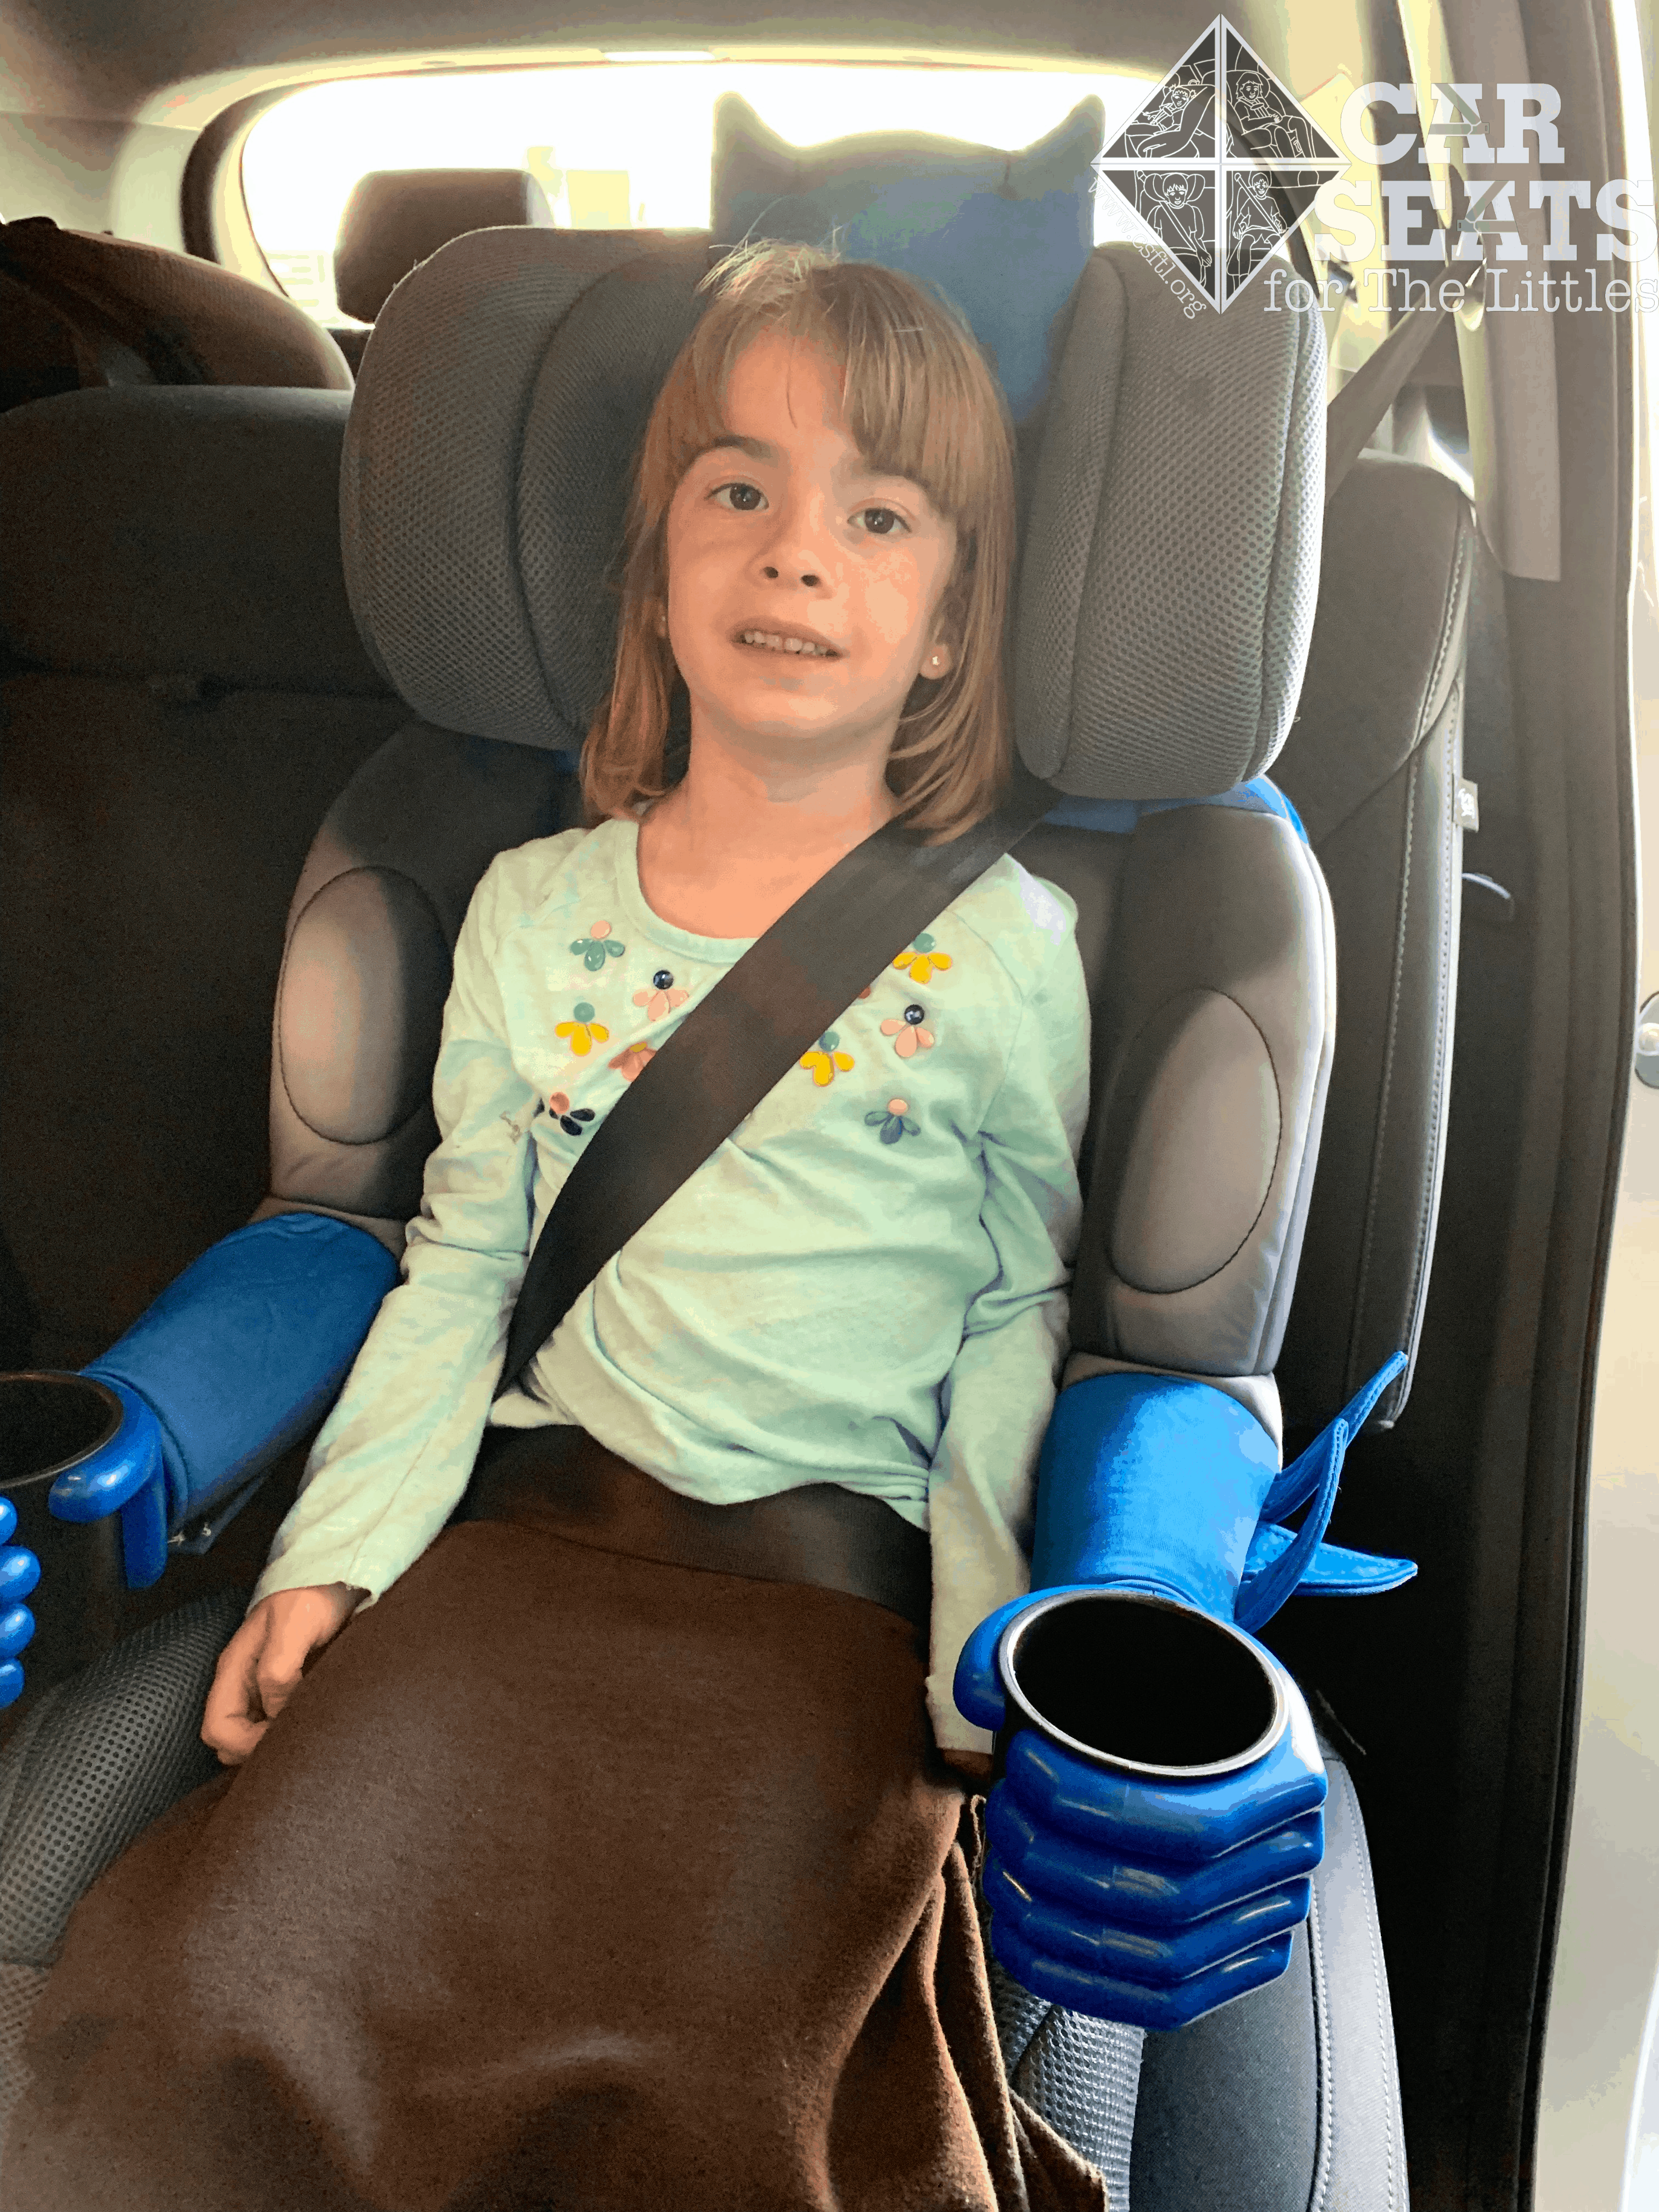 To Booster Car Seat Review, Car Seat For 6 Year Old With Harness